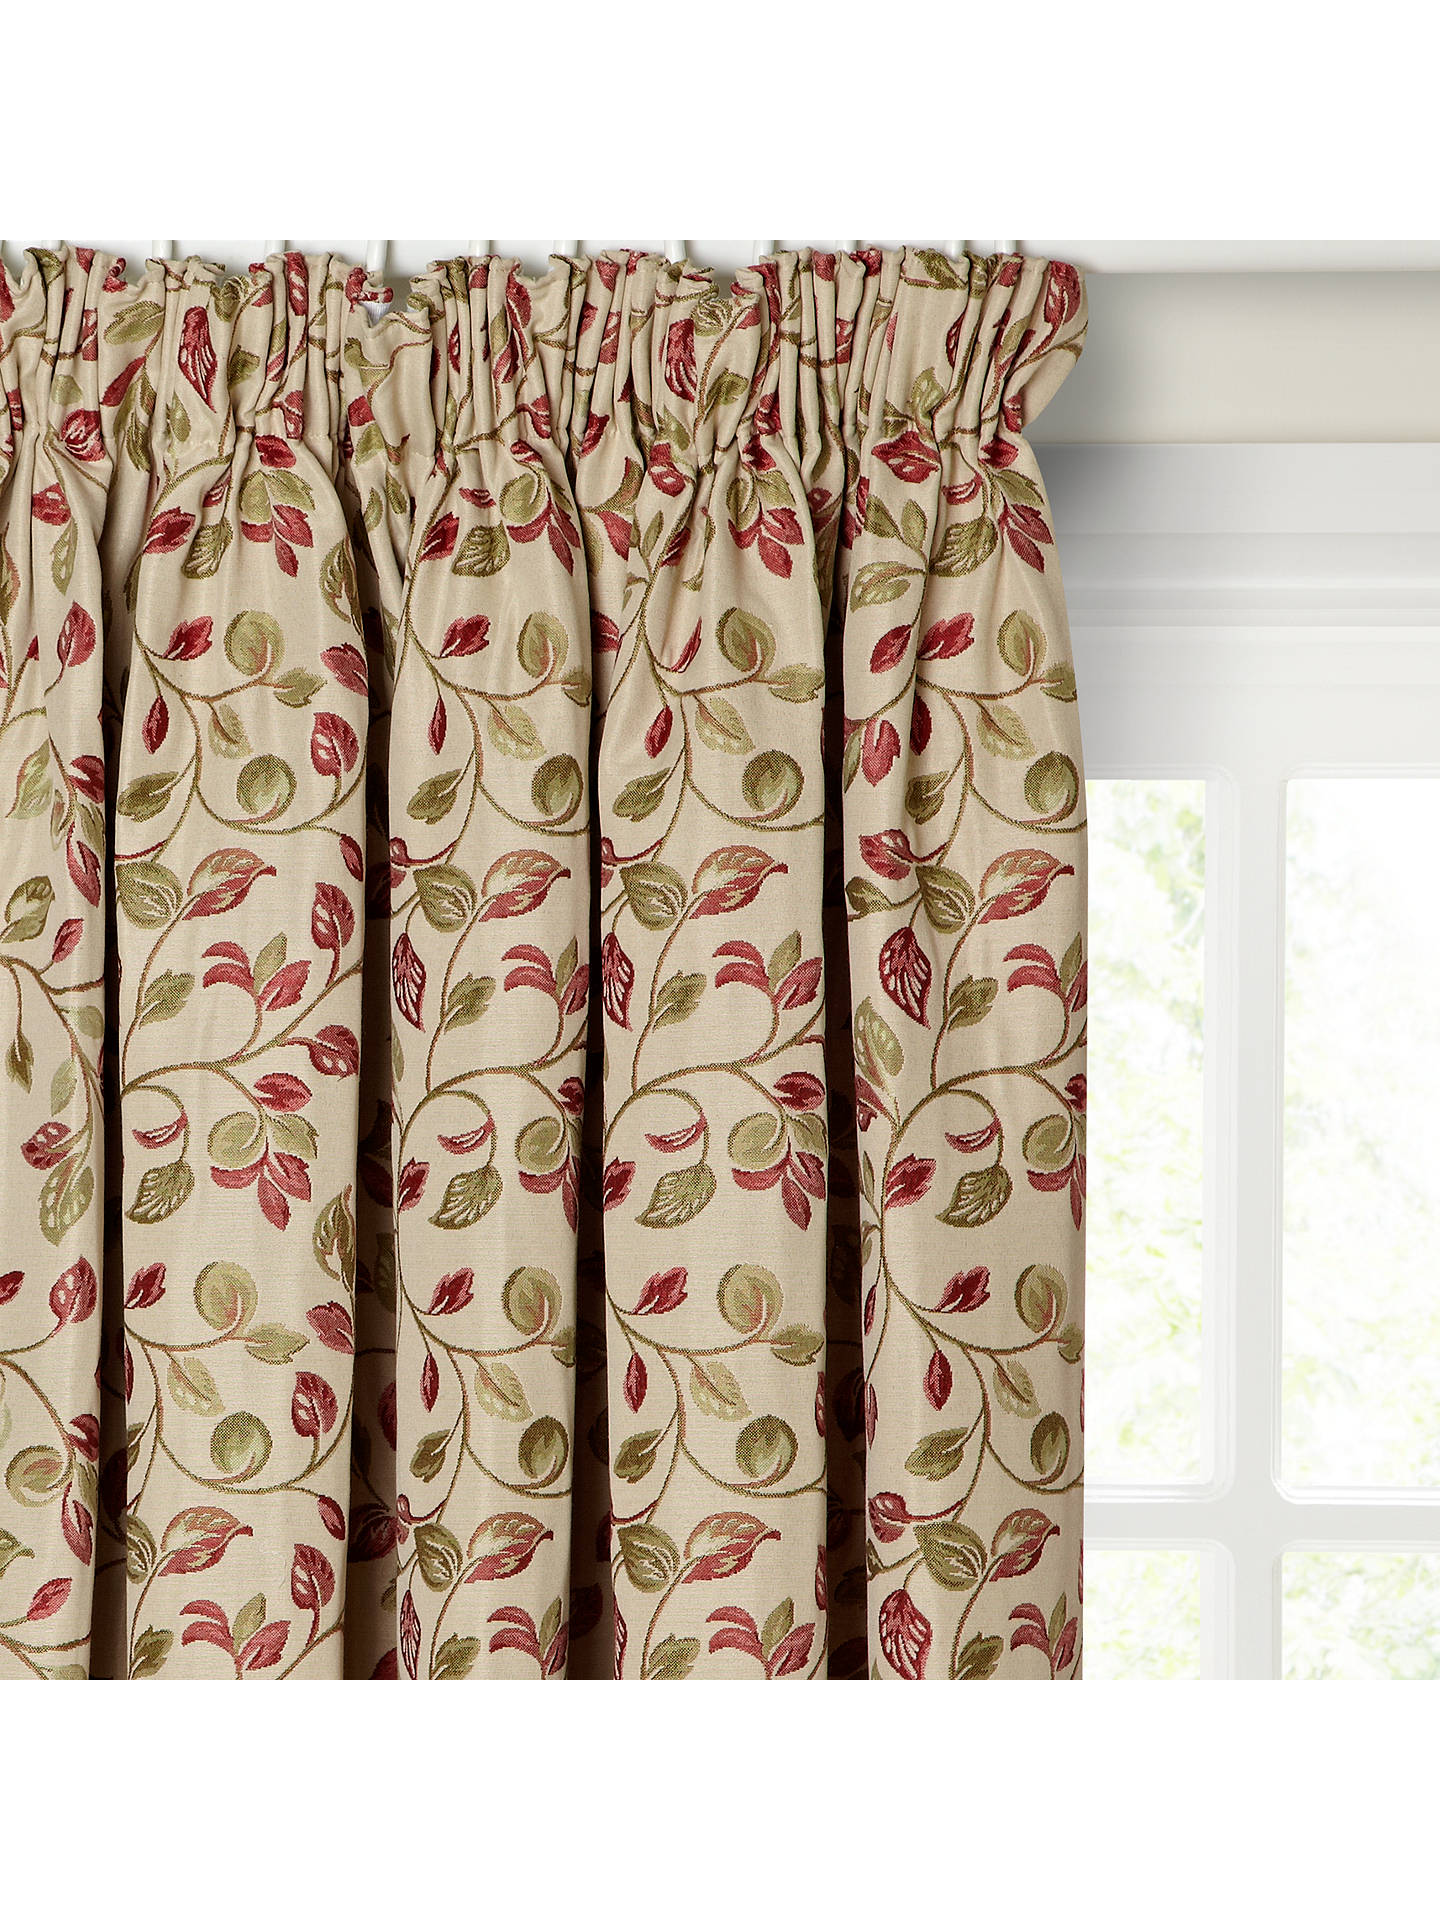 49d6dfbf7843 Buy John Lewis & Partners Sherwood Pair Lined Pencil Pleat Curtains, Red /  Green, ...